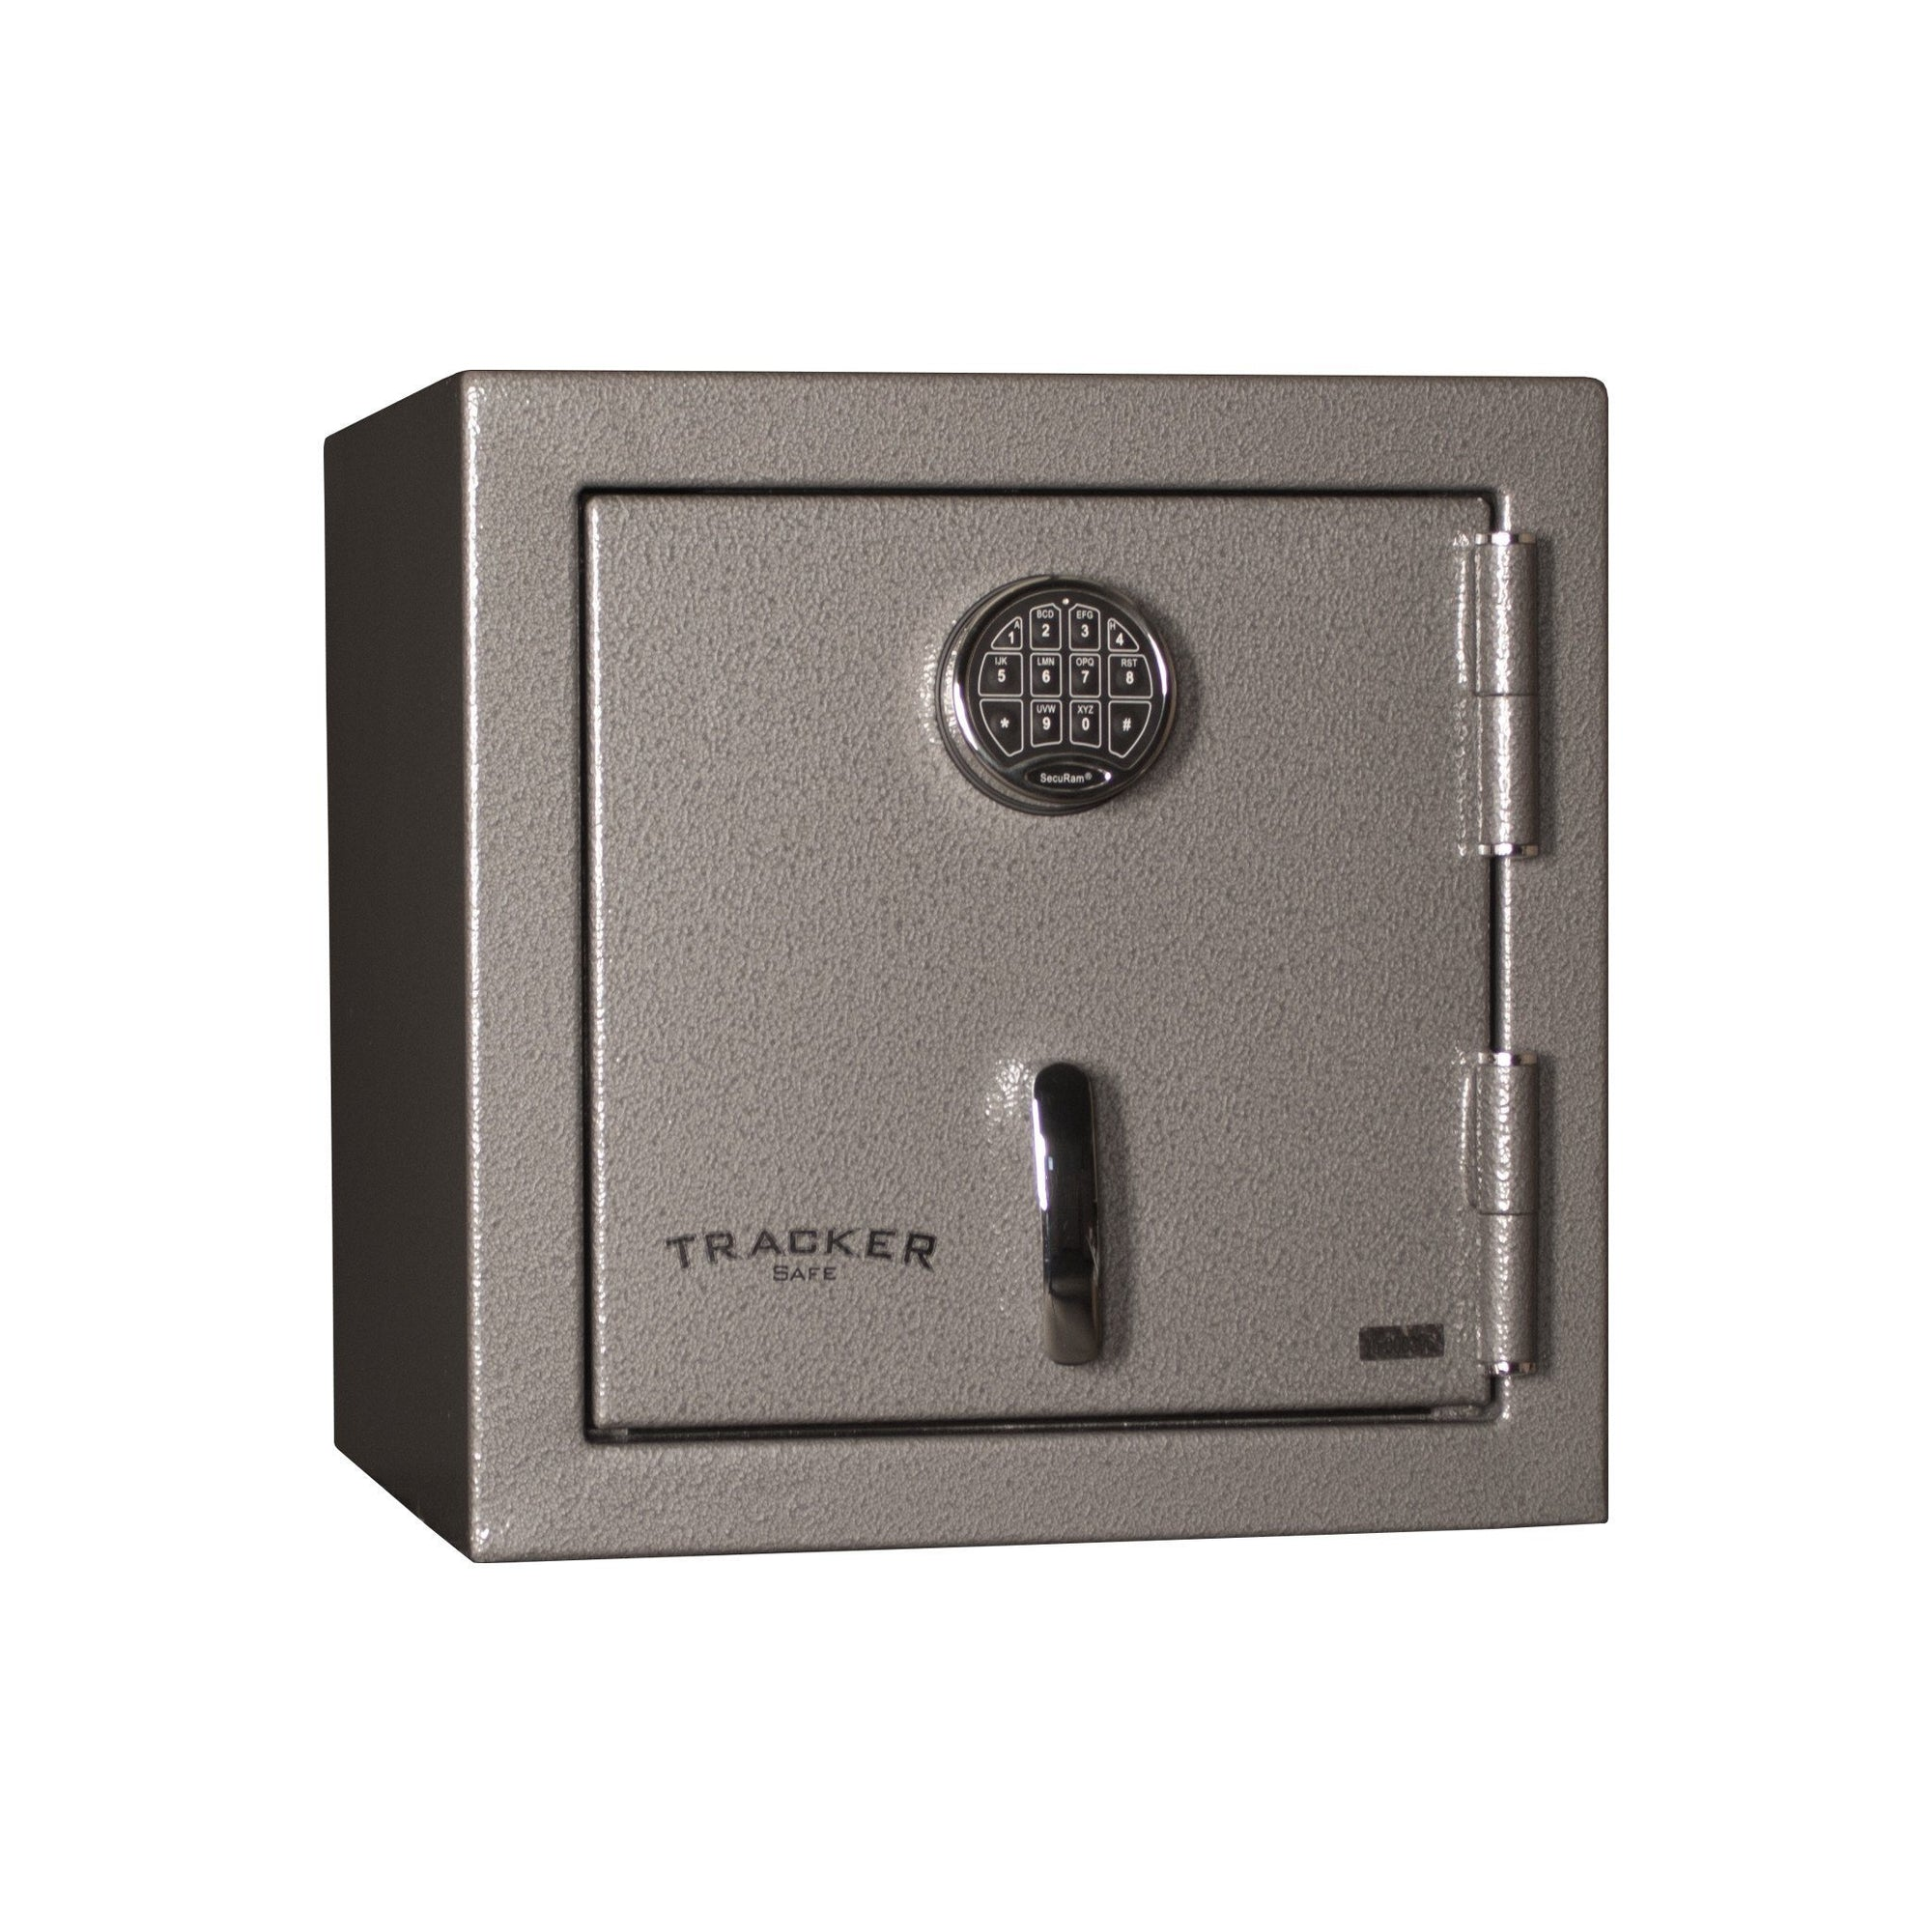 Burglar Fire Safe Products - Tracker Safe HS20 Home Security Safe